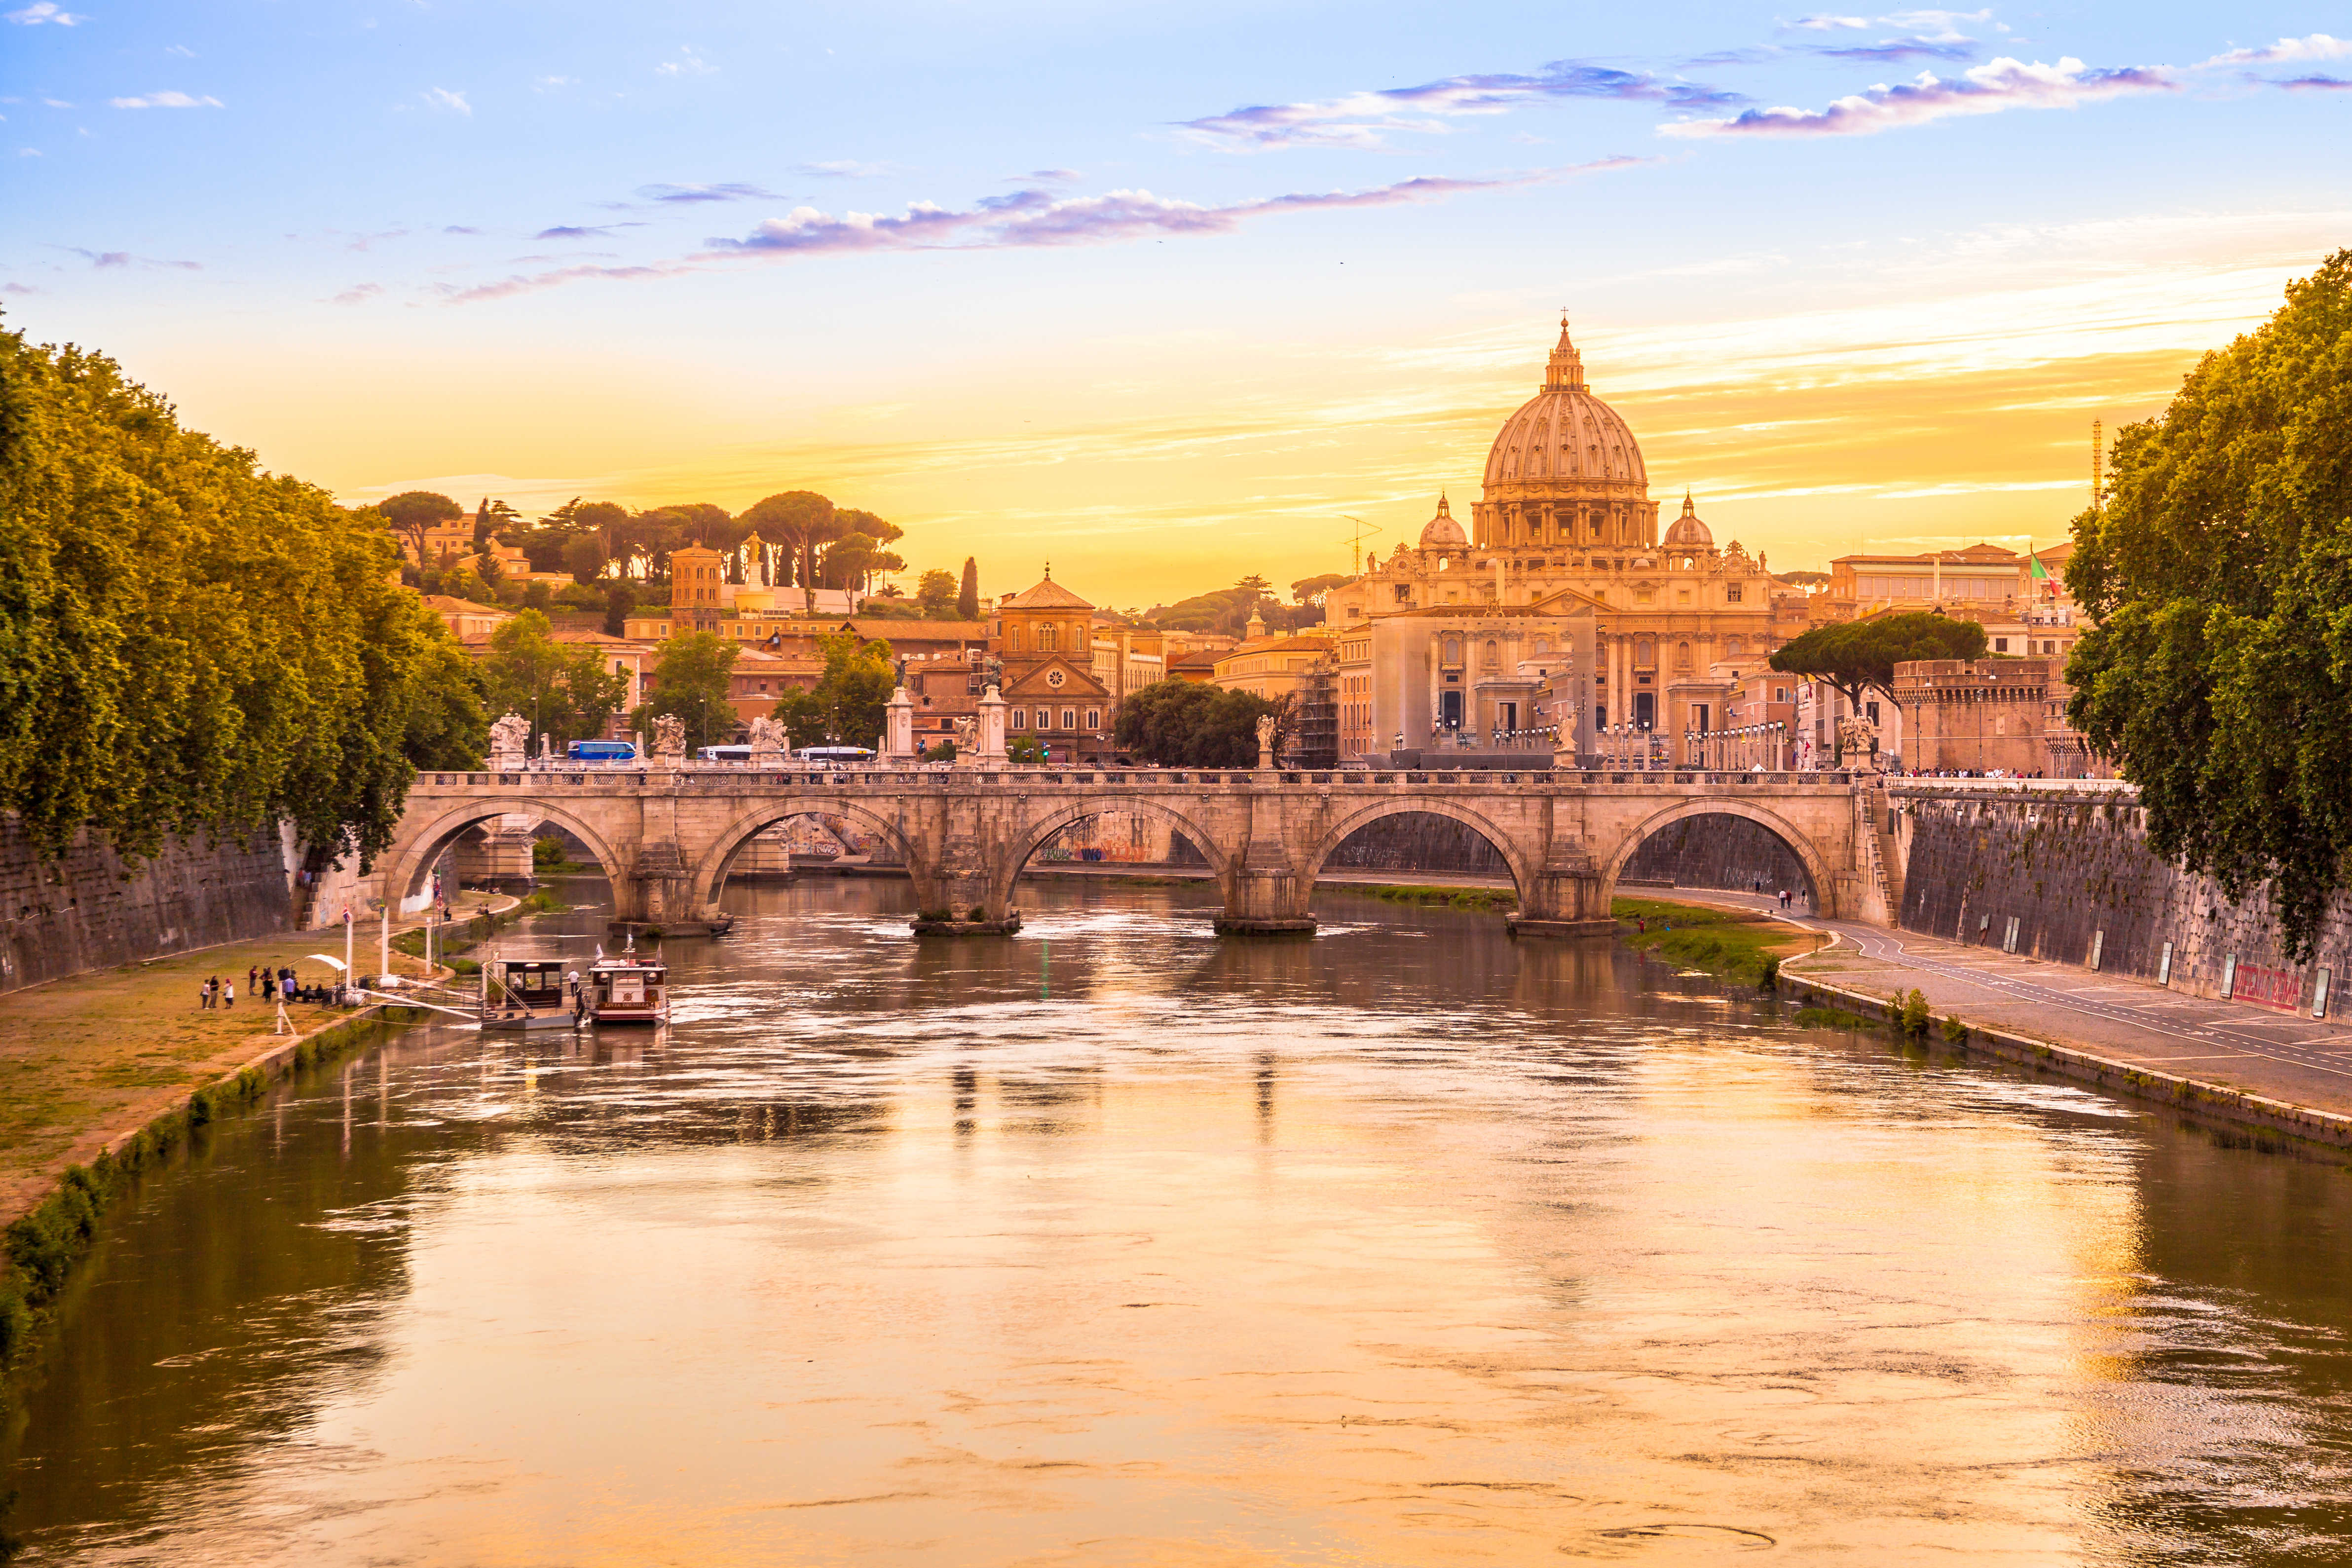 Vatican city with St. Peter's Basilica